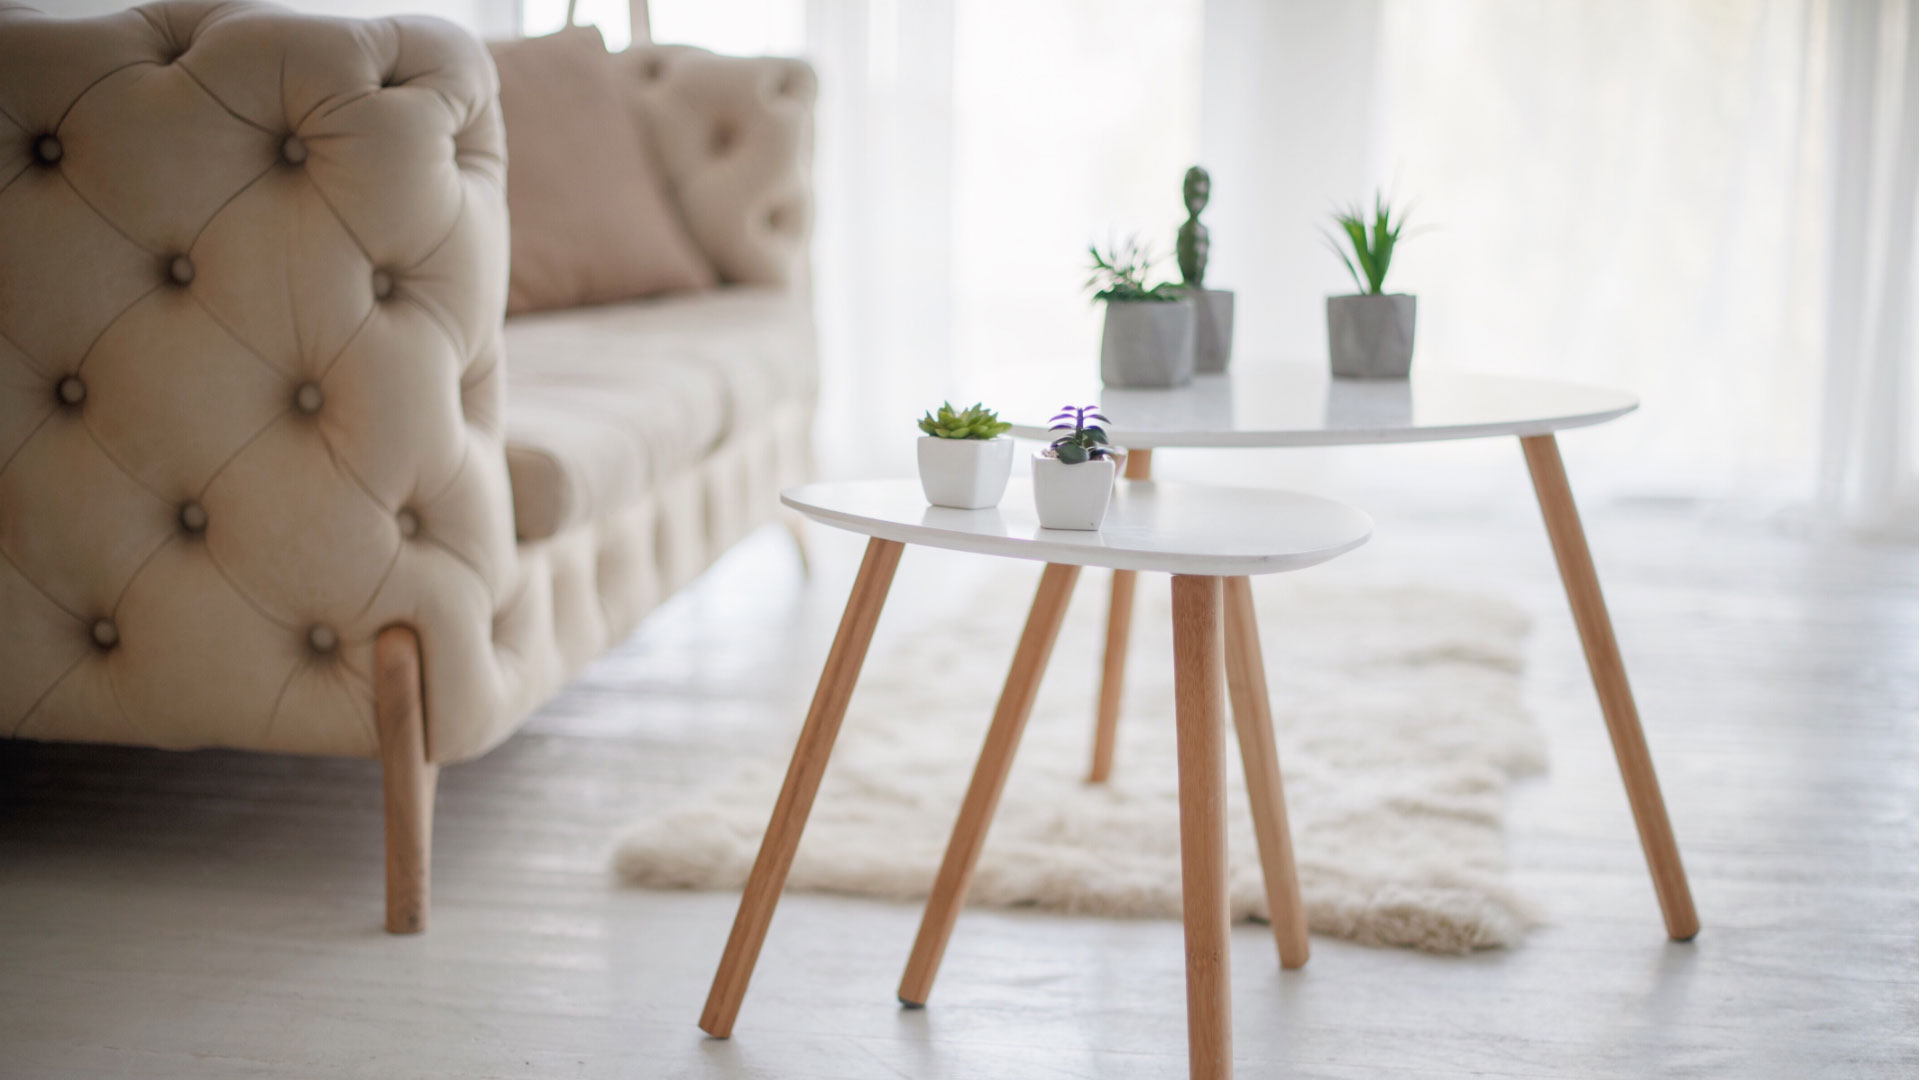 coffee table with plants